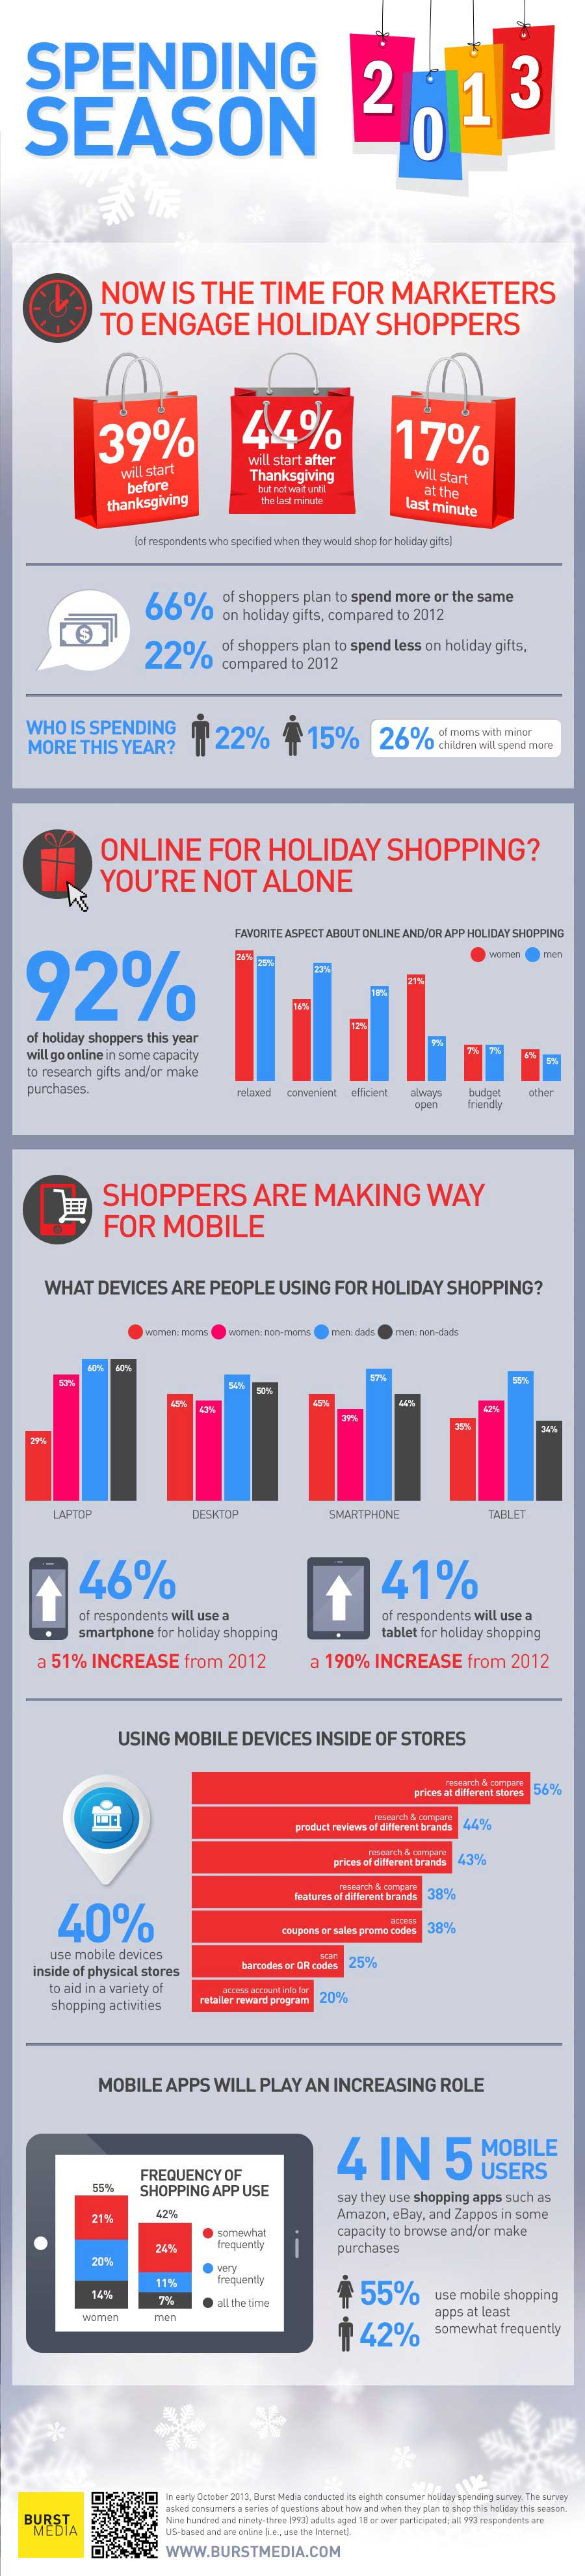 Customer Behavior Holiday Season  How And When Consumers Shopping Season  Large Burst Infographic Holiday Season  How And When Consumers Plan To Shop Infographic